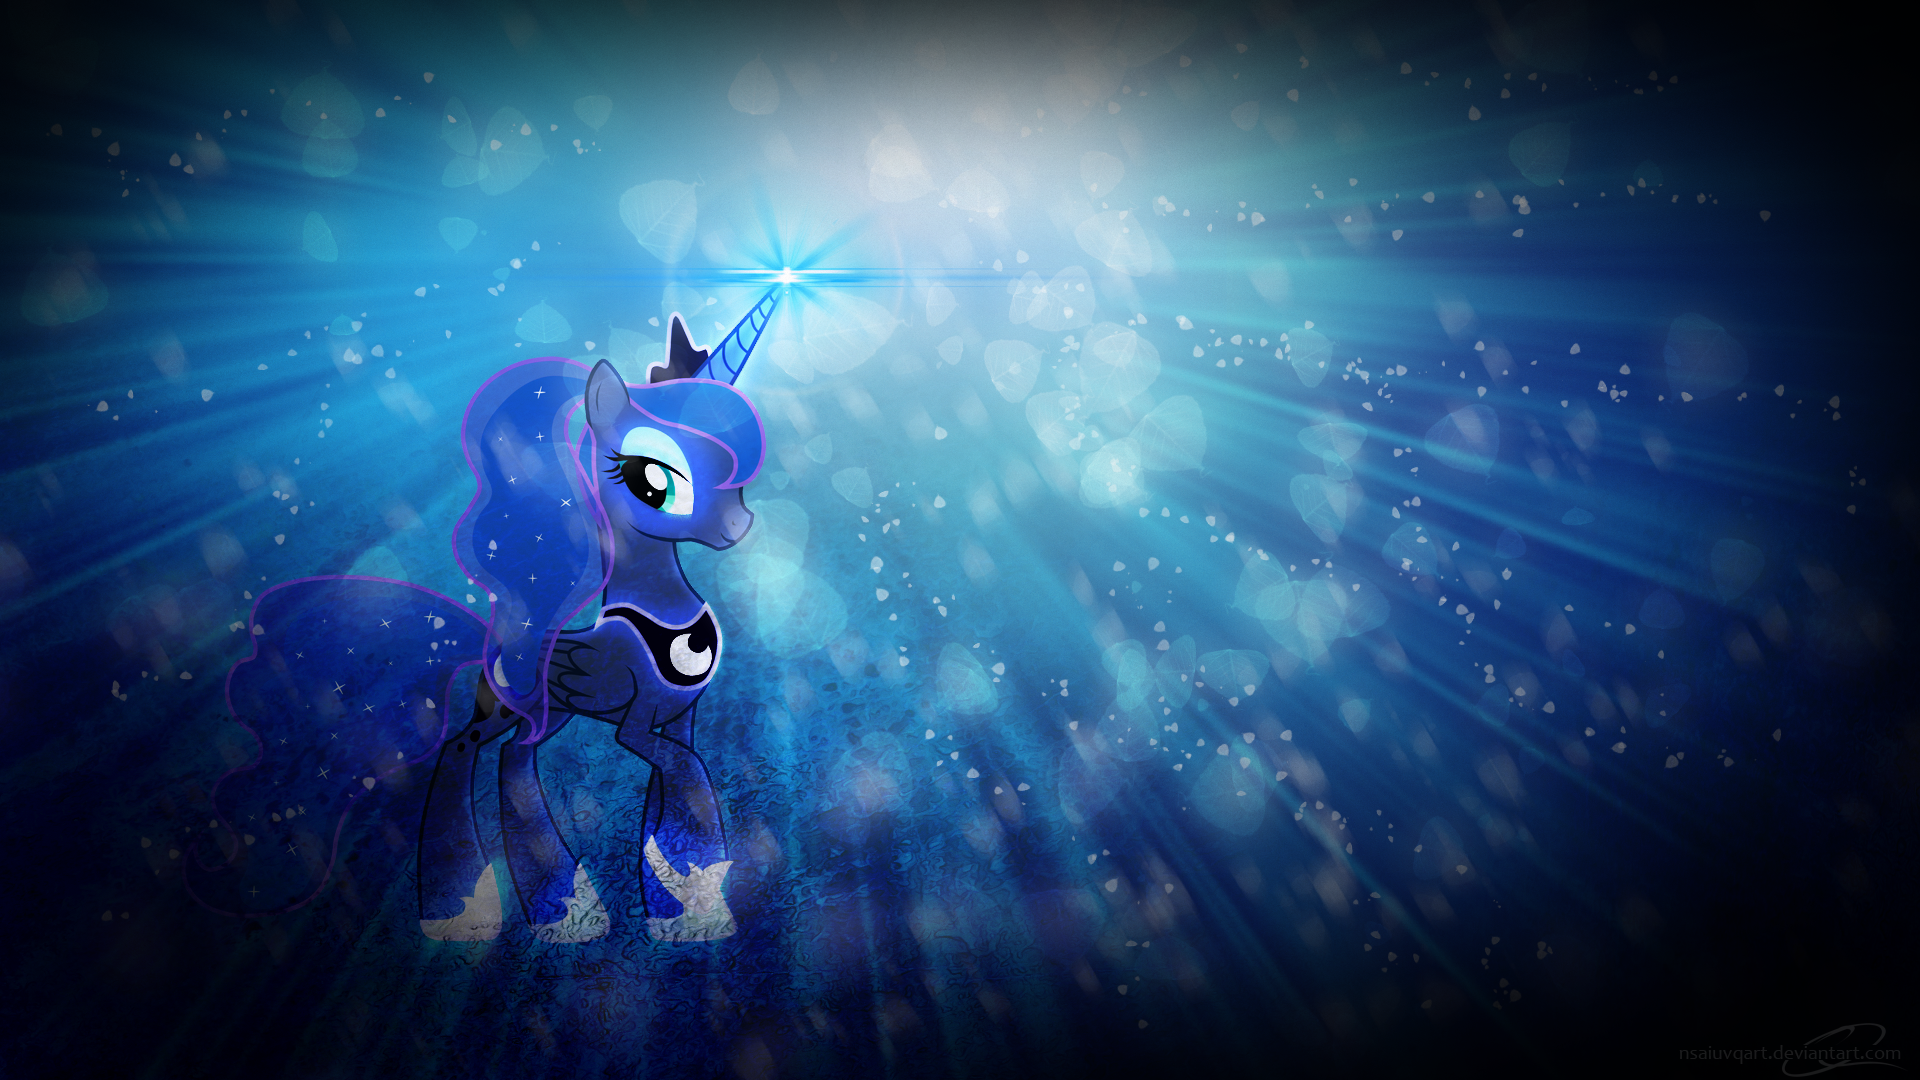 Luna - Dreams WP by nsaiuvqart